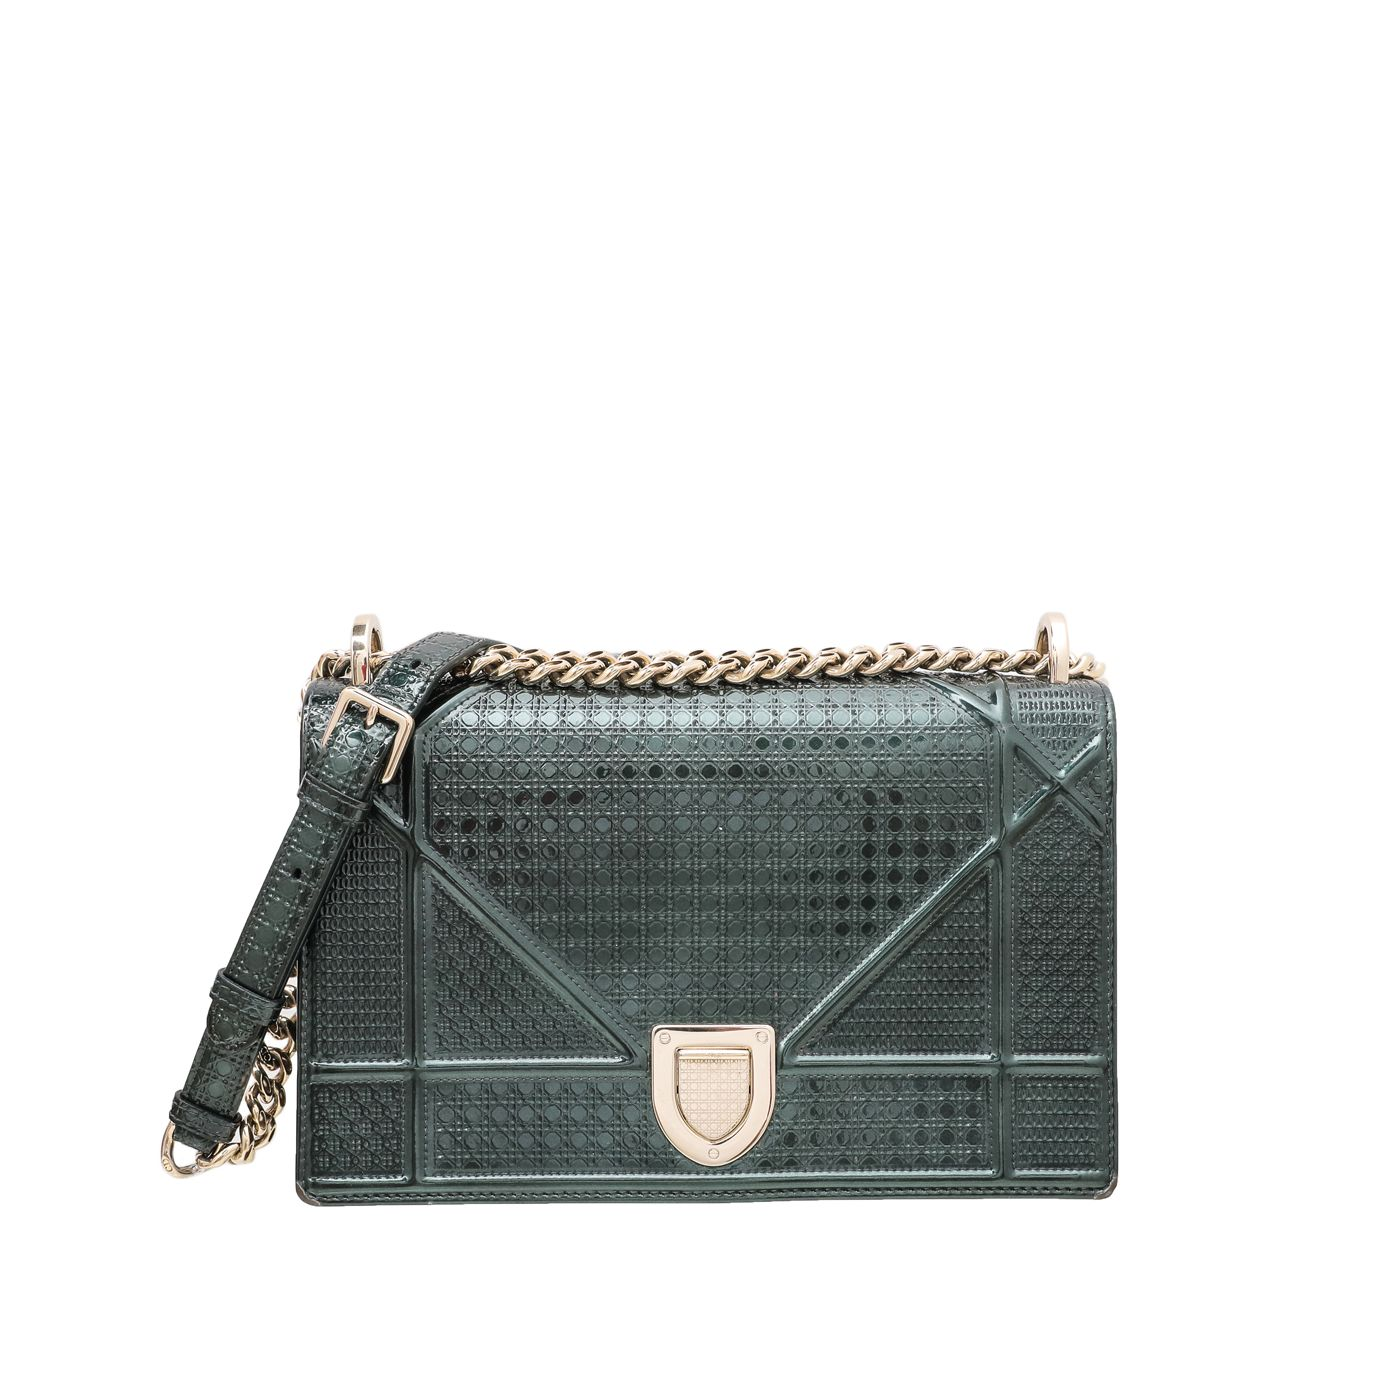 Christian Dior Emerald Green Diorama Micro Cannage Shoulder Bag